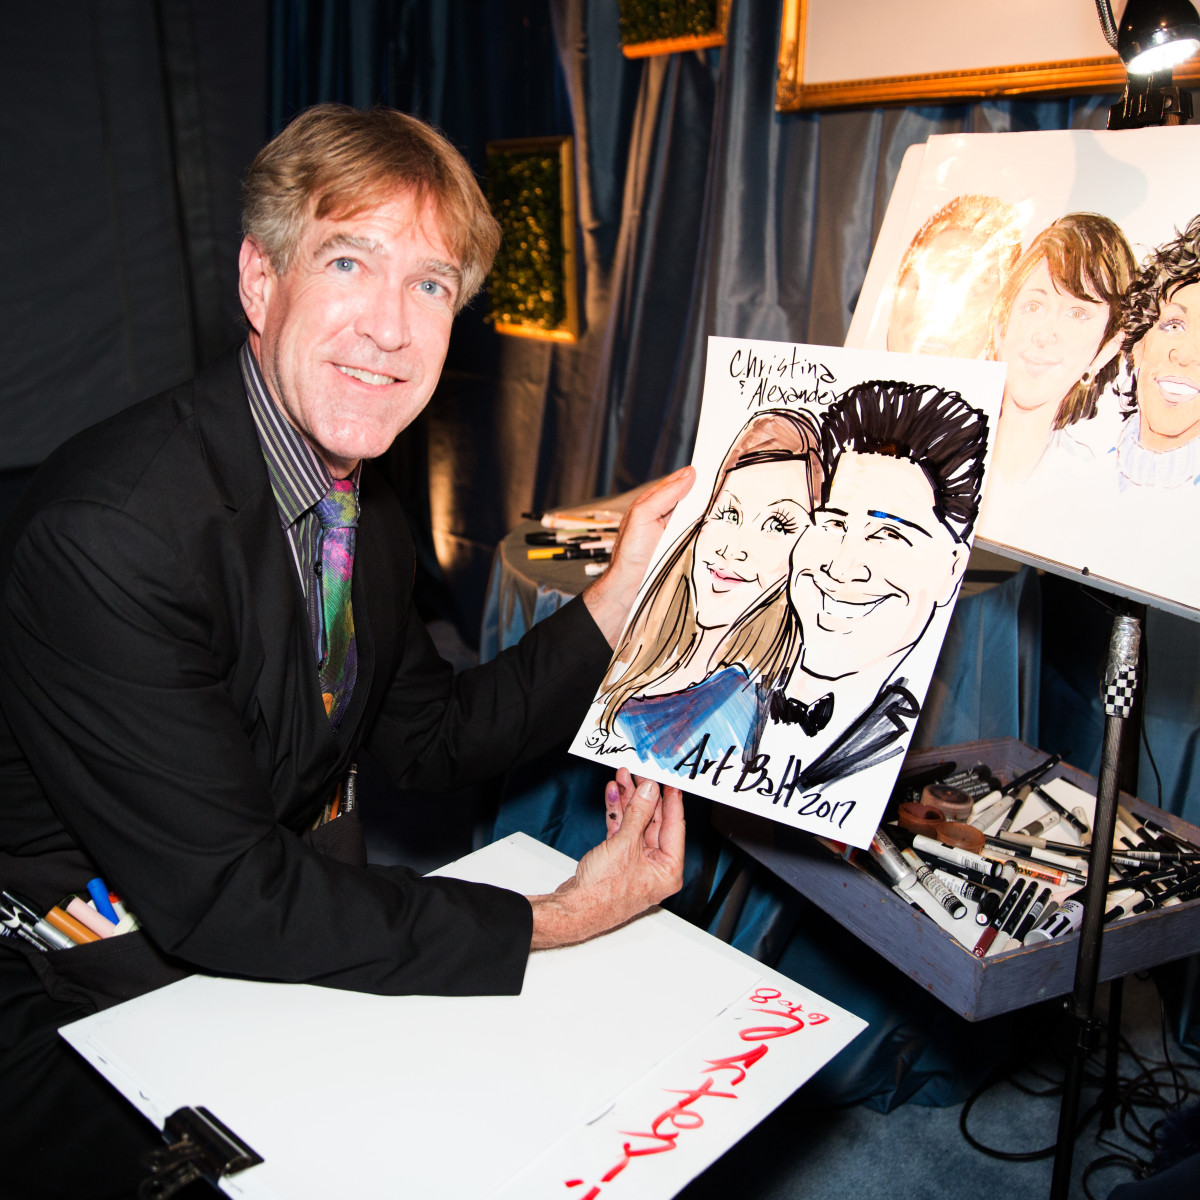 Caricature artist at Dallas Art Ball 2017